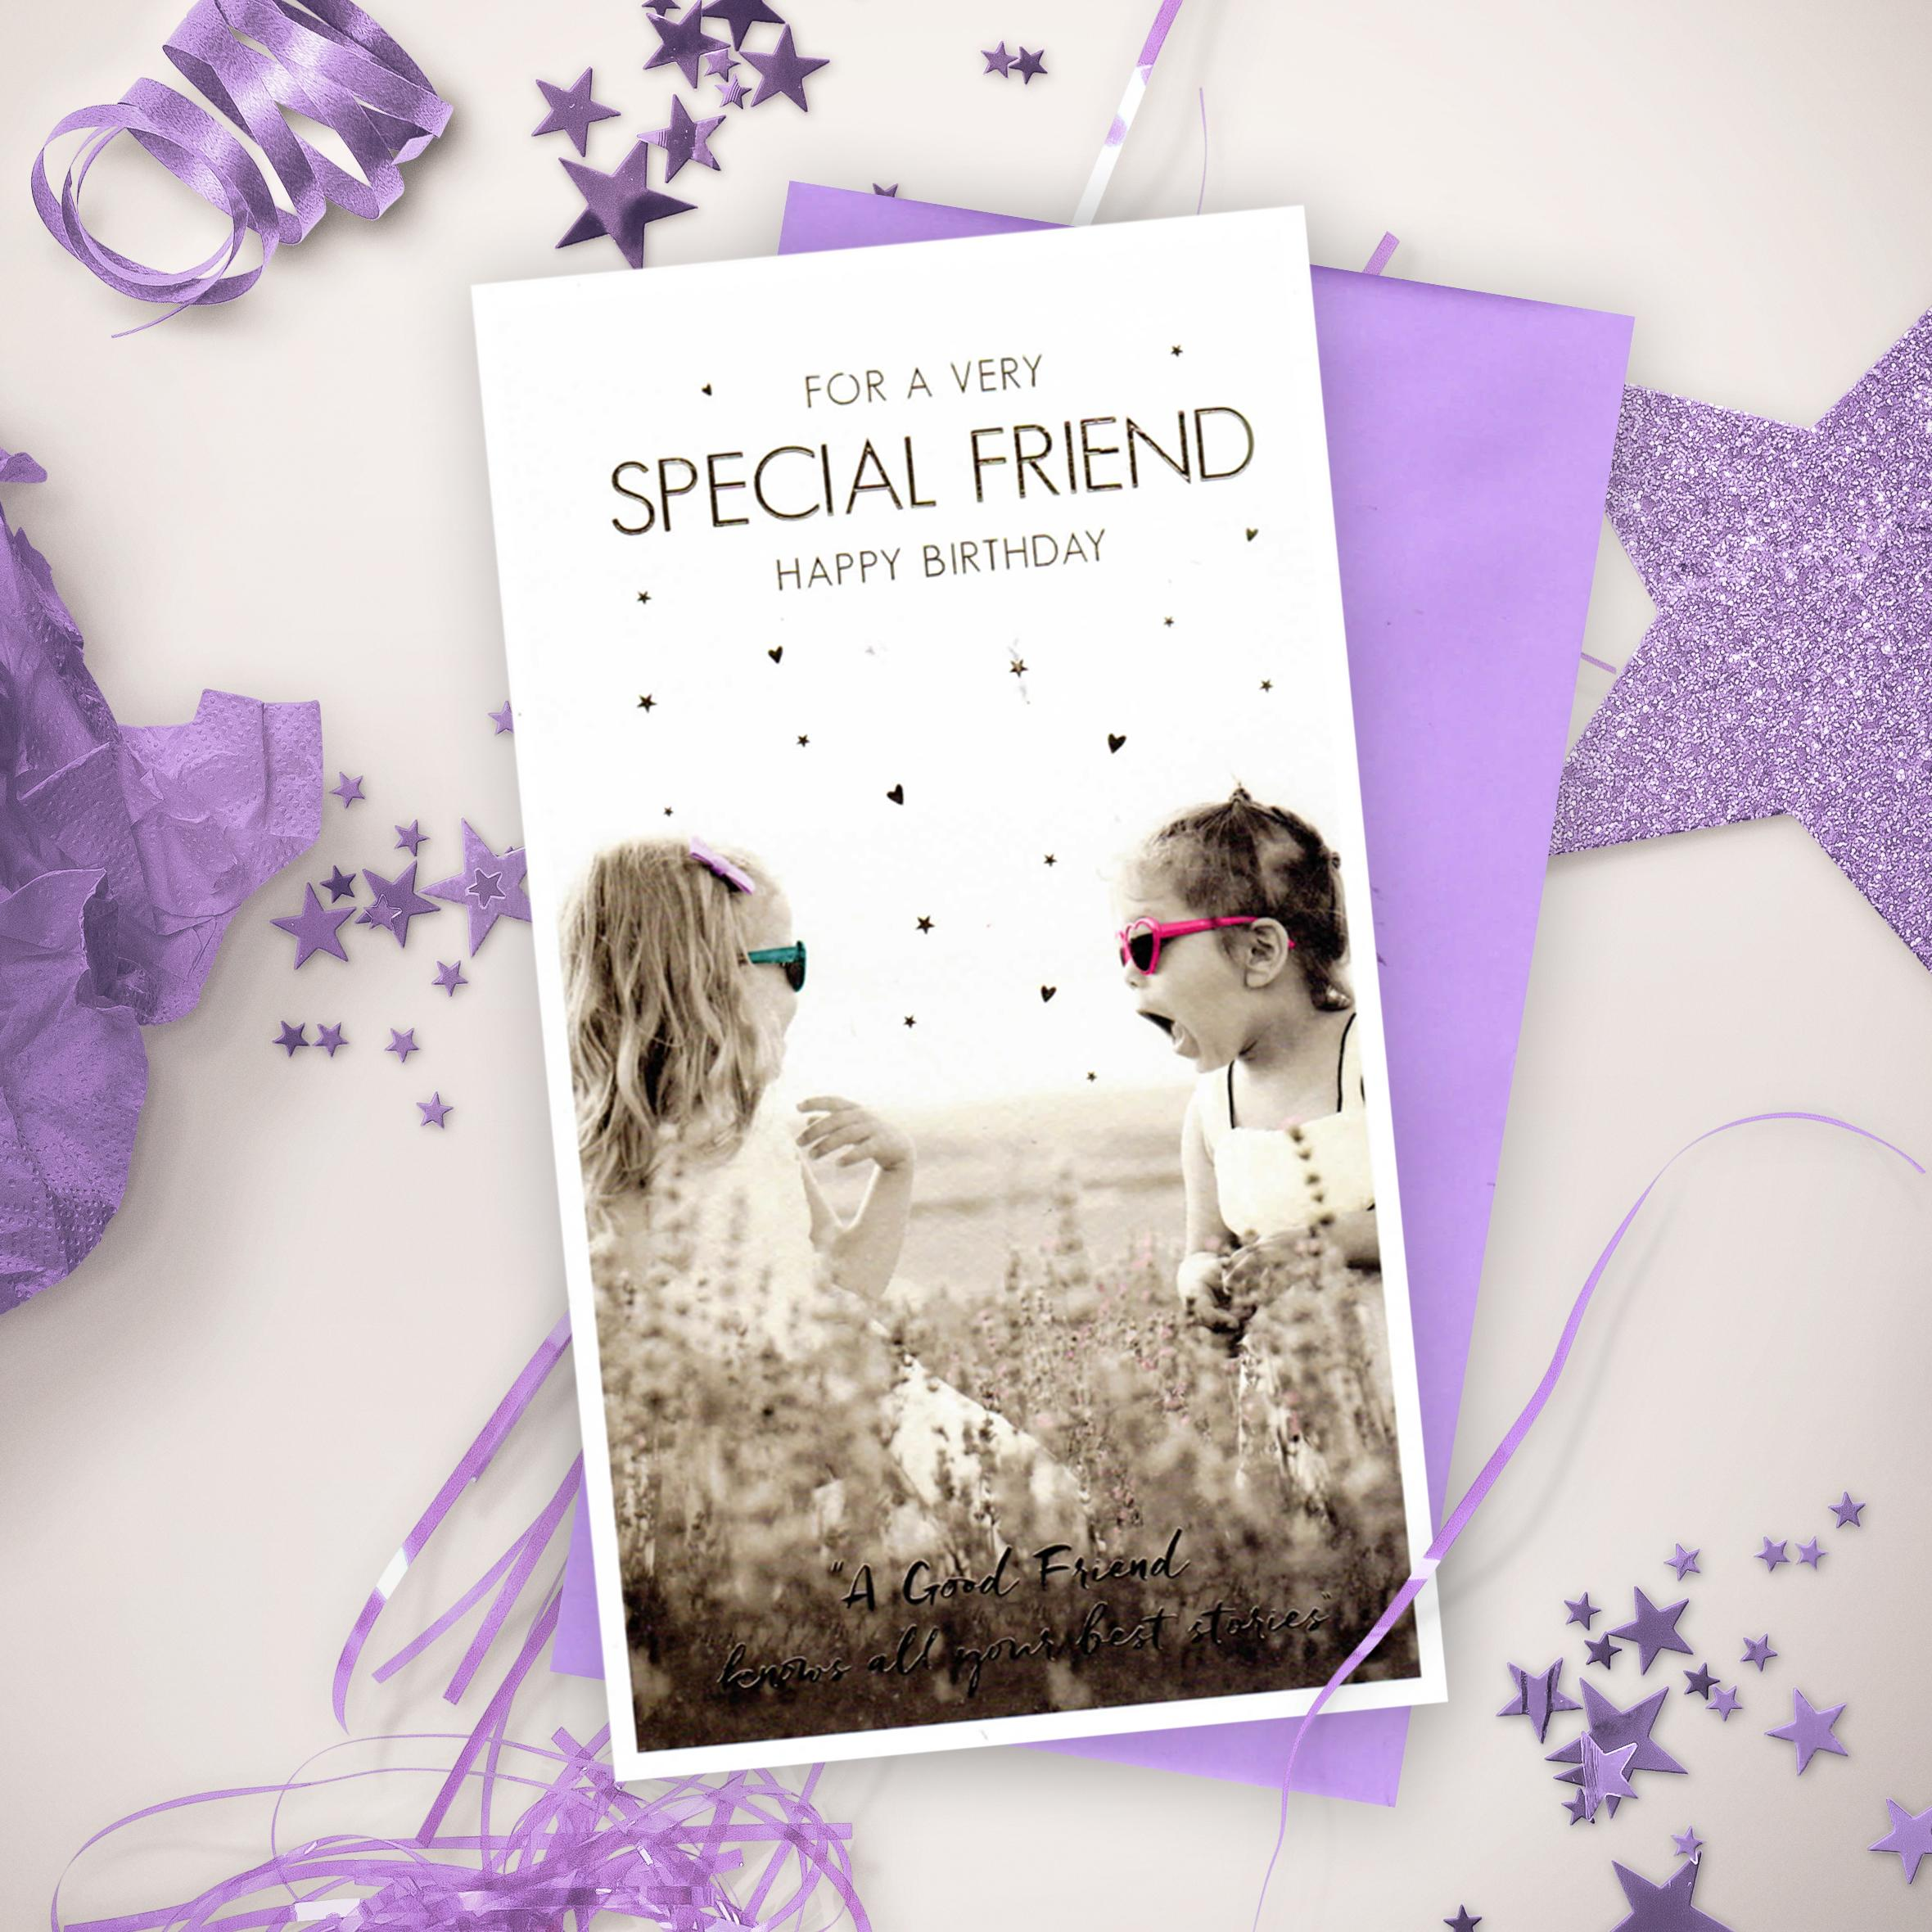 Friend Card Complete With Lilac Envelope